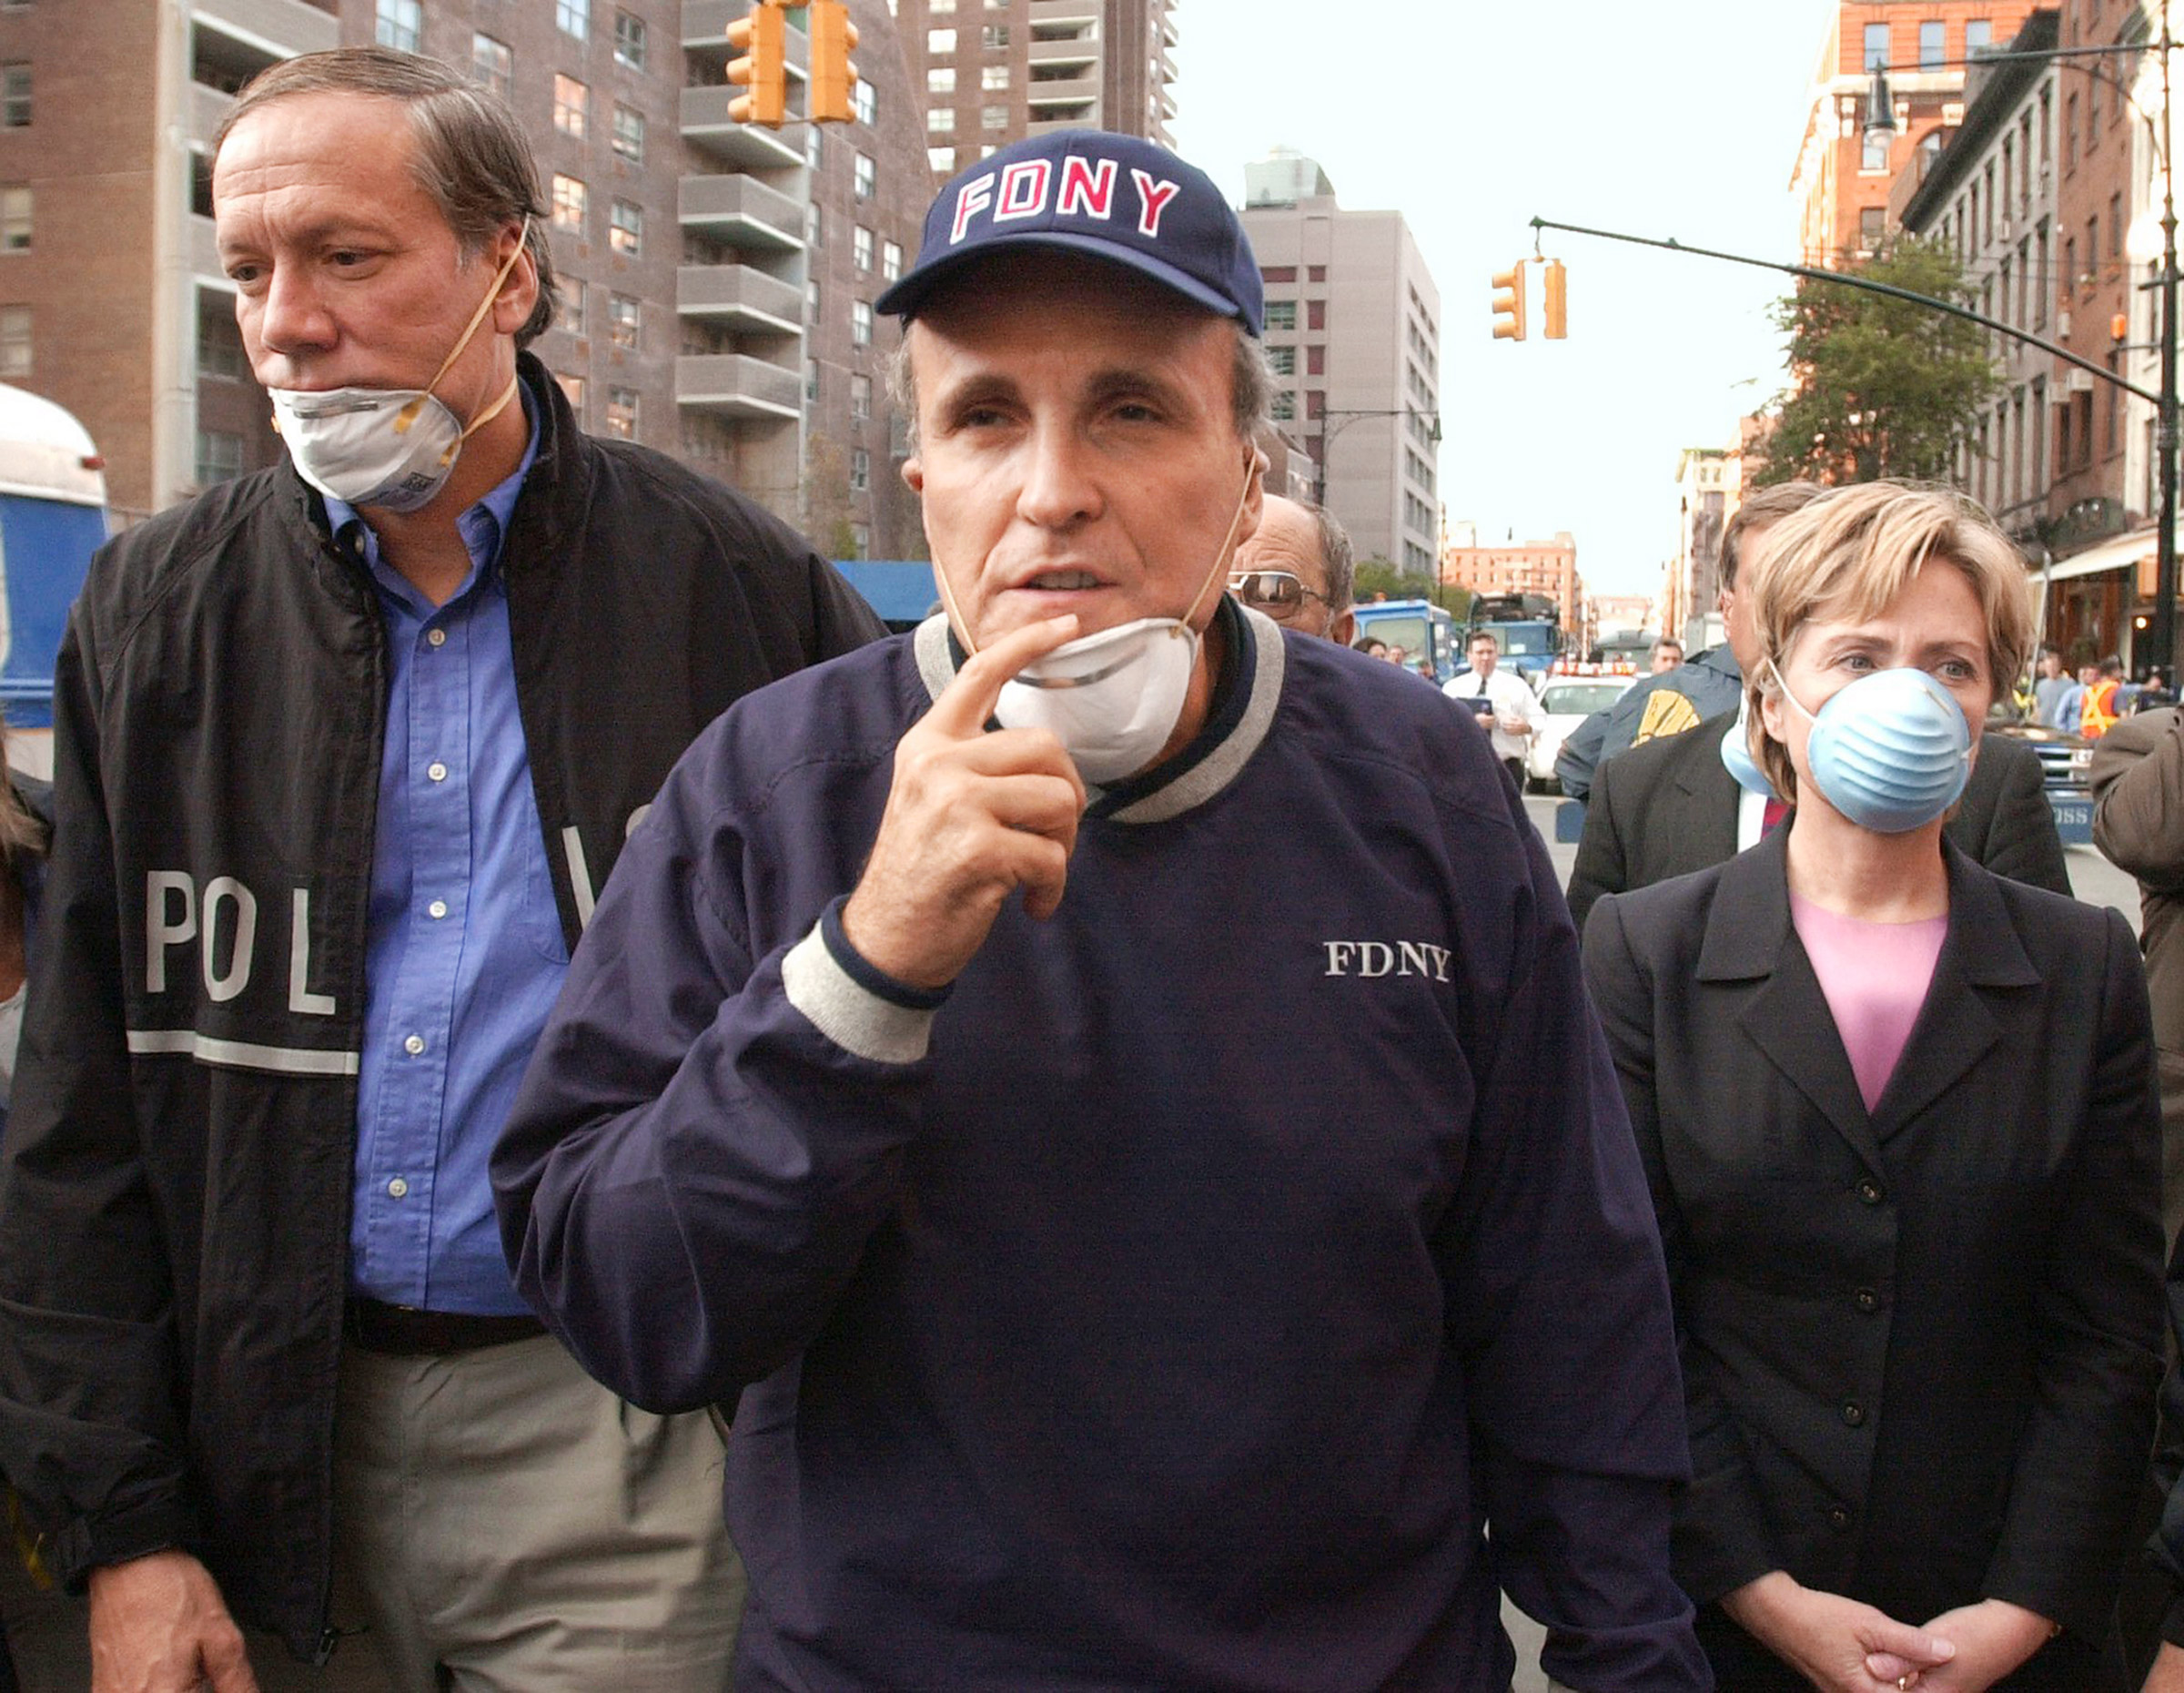 Giuliani became a figure of resilience after the Sept.11 attacks